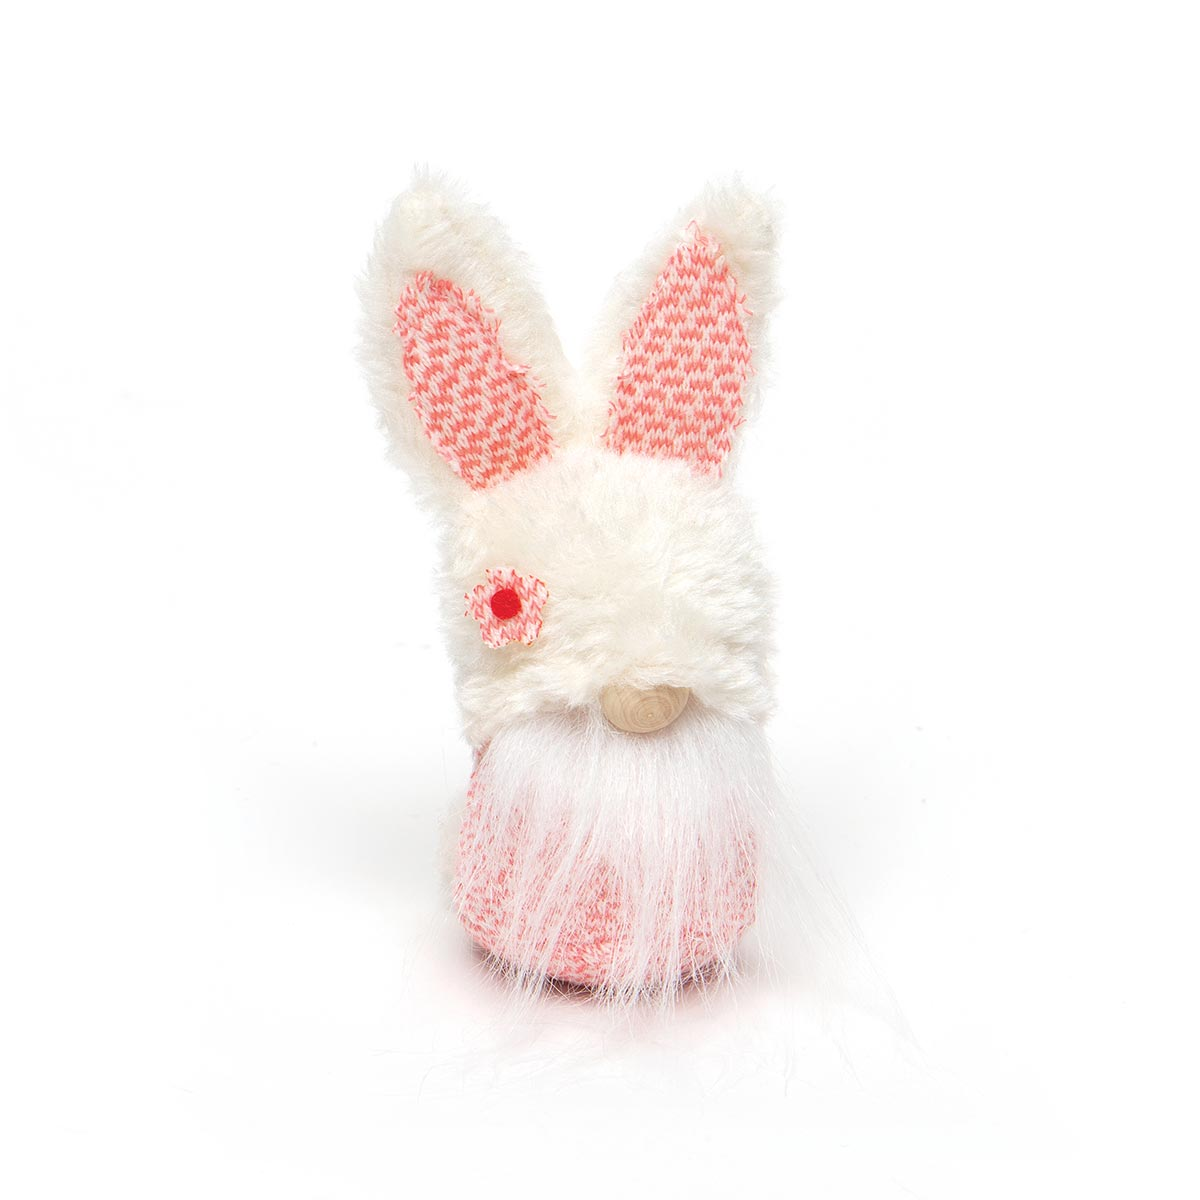 SPRING FLING BUNNY GNOME ORNAMENT WITH FUZZY HAT, WOOD NOSE AND